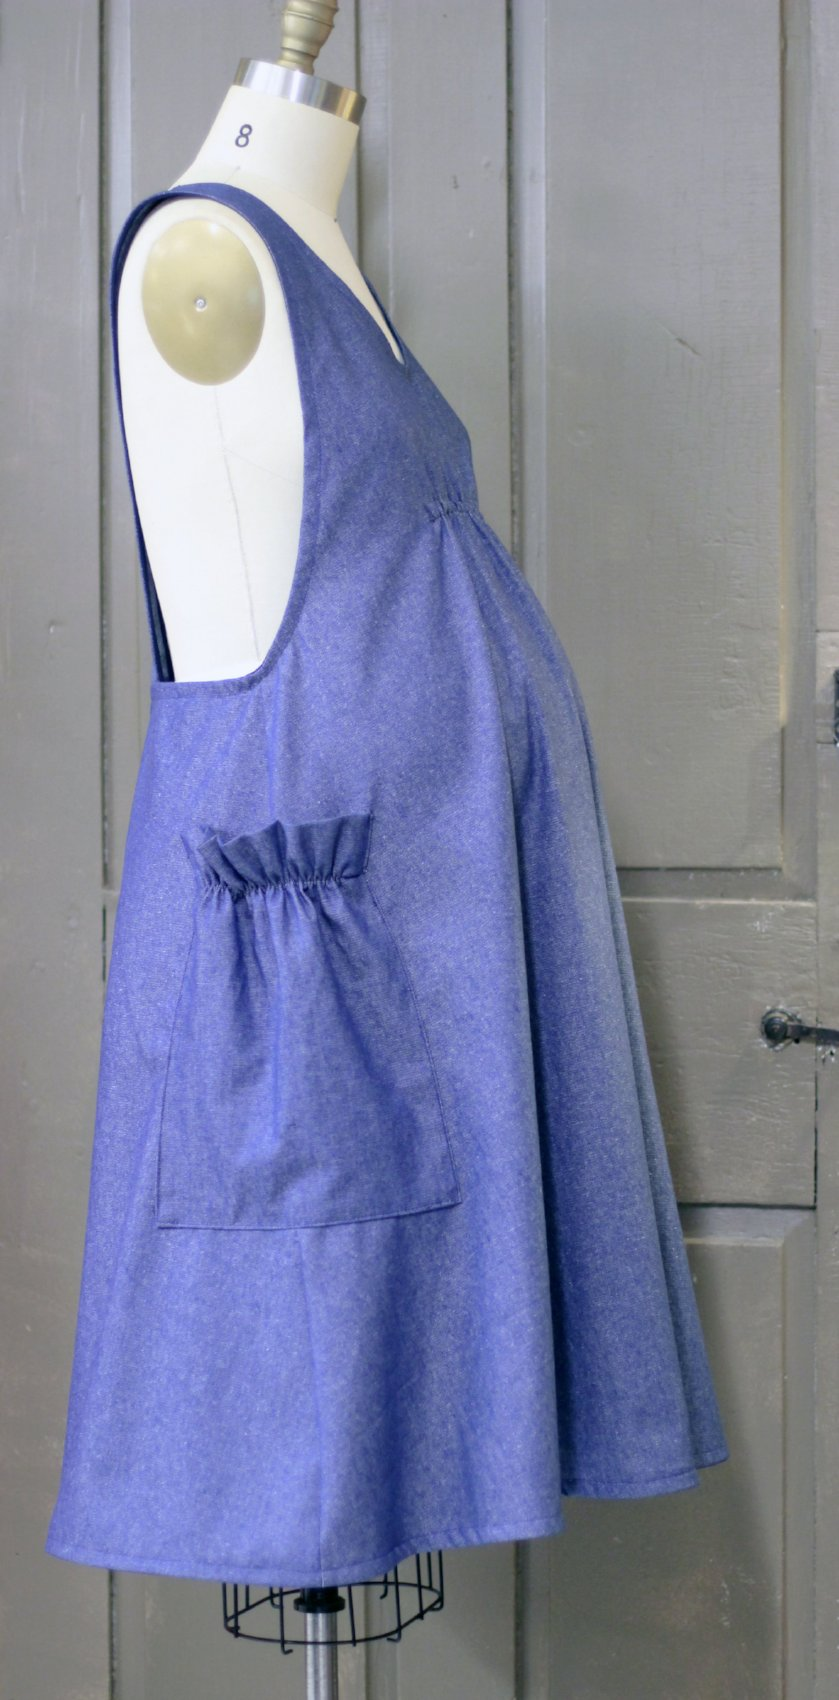 XS-5X No Tie Crossback Apron Maternity Apron in Navy Denim with baby bump, side view